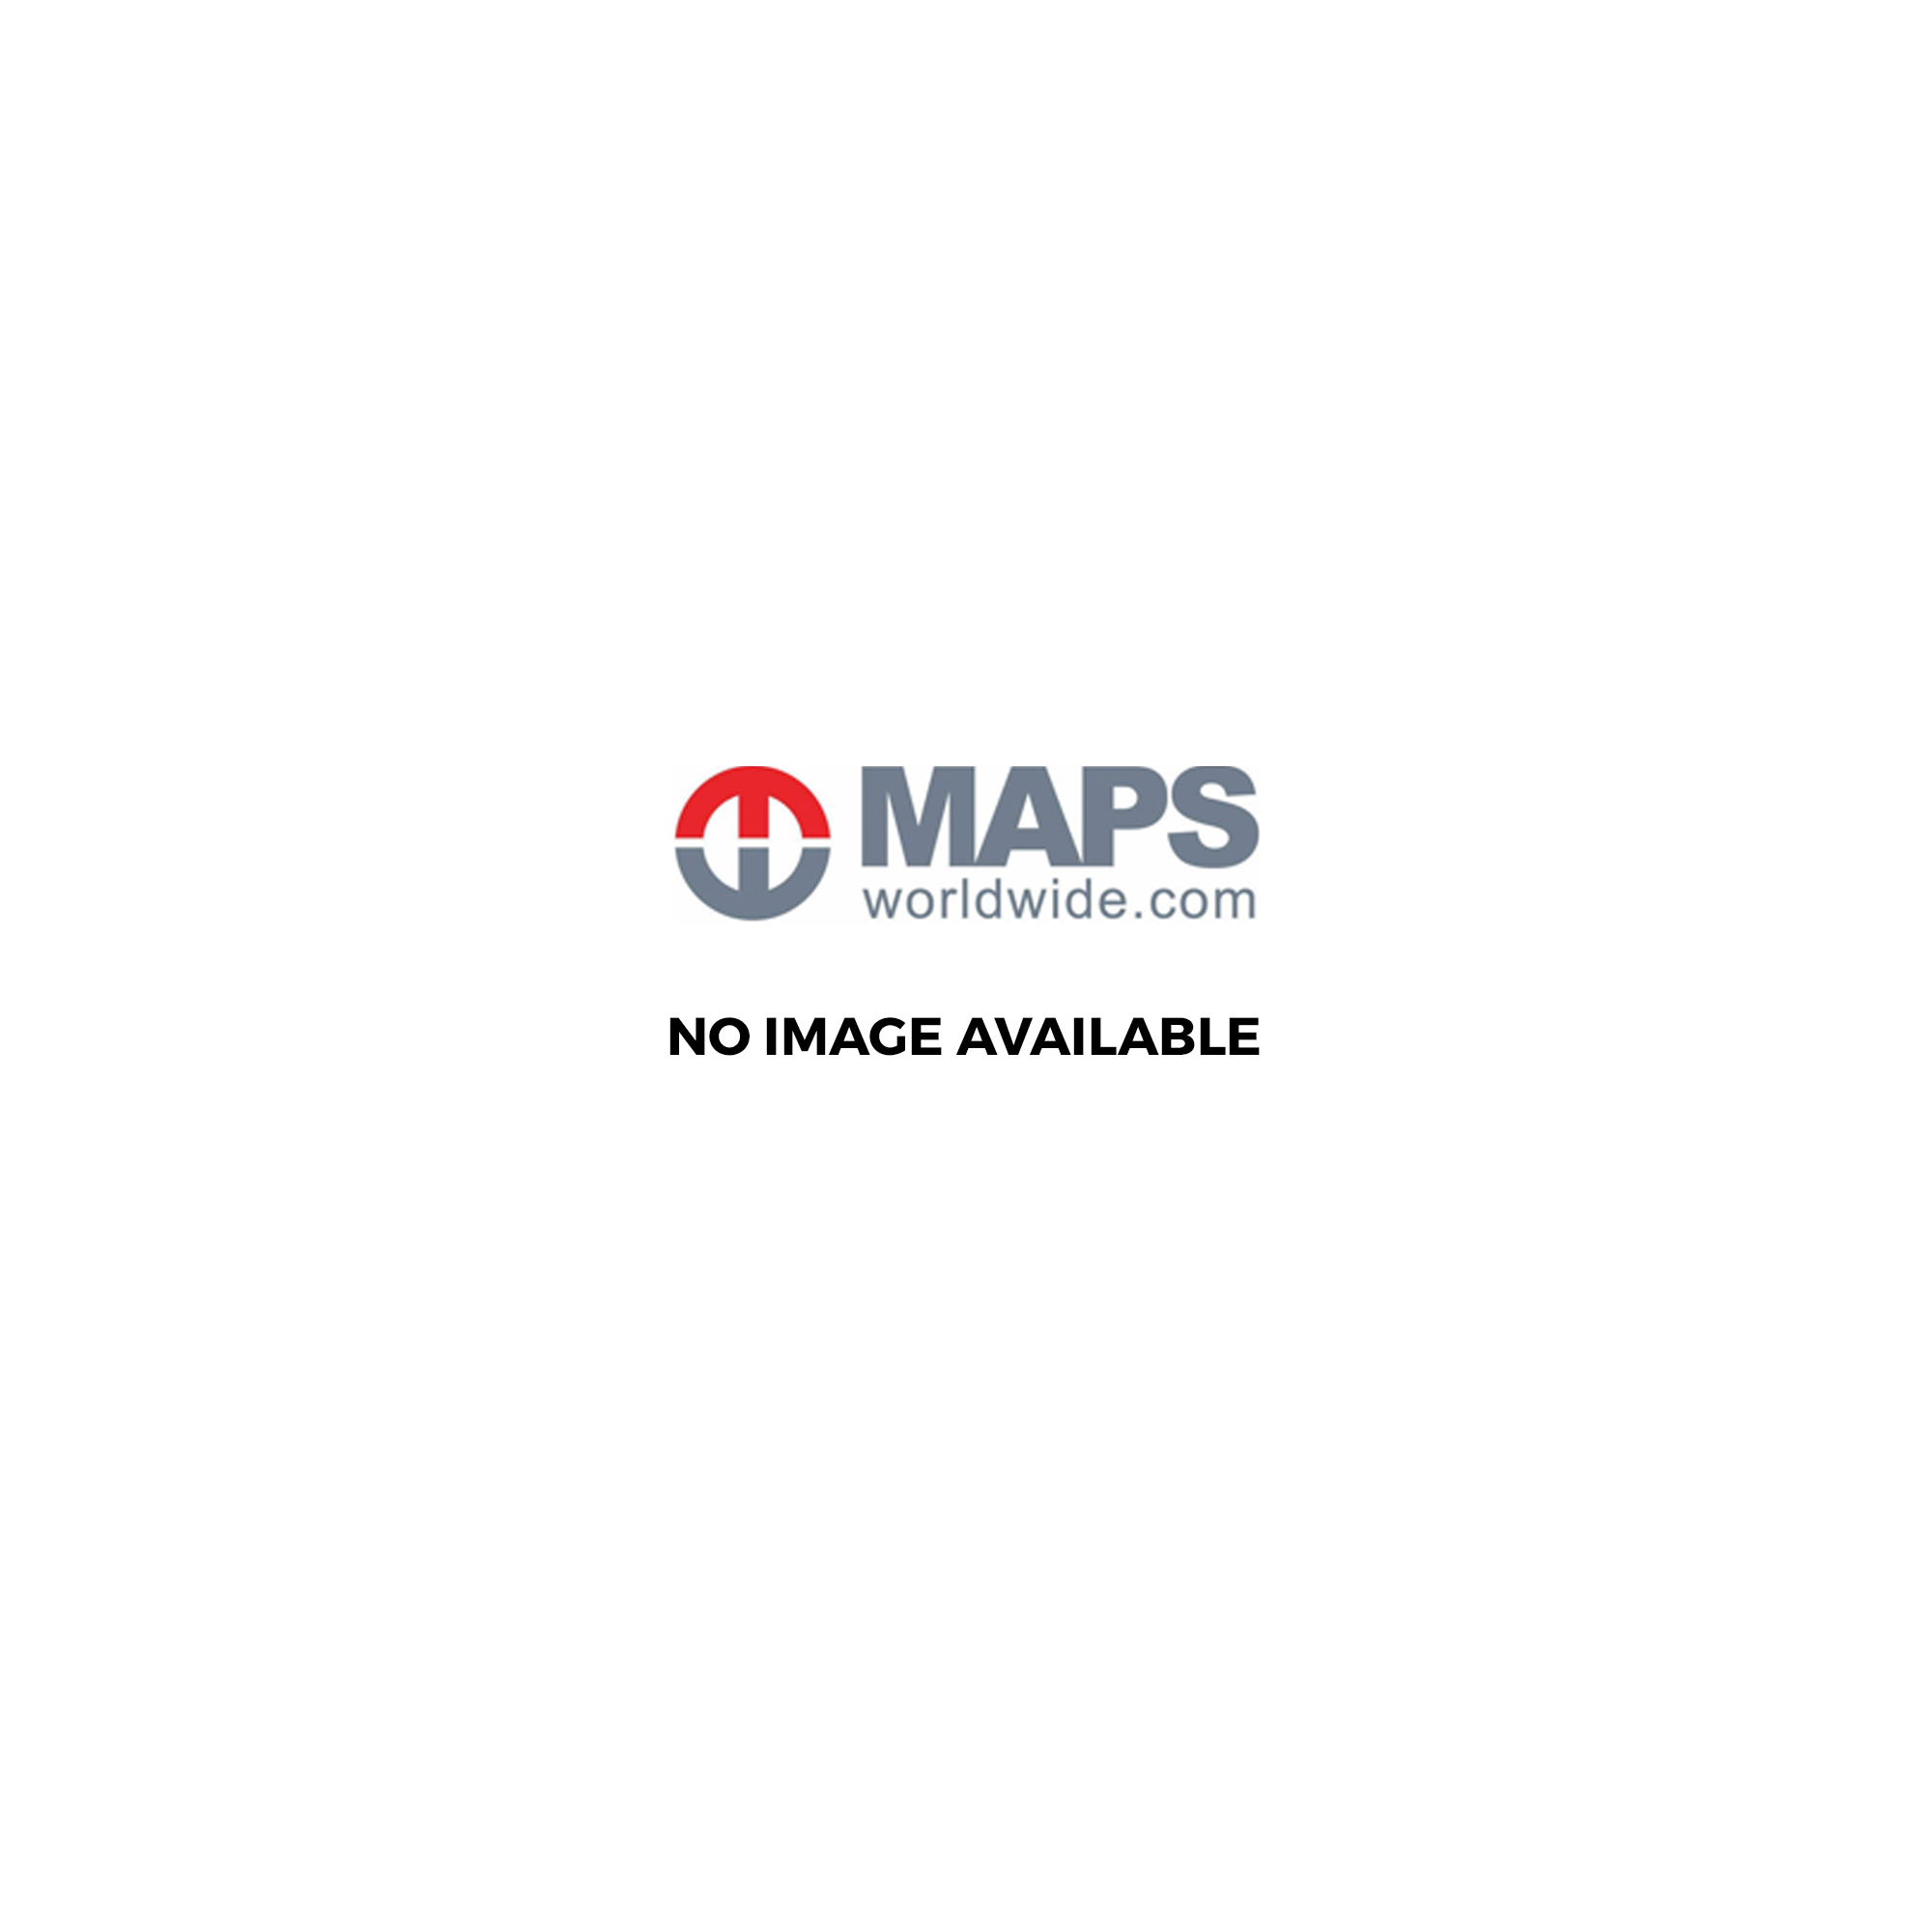 Streetwise Seattle Map - Laminated City Center Street Map of Seattle, on visit seattle map, northshore school district map, king county map, los angeles seattle map, seattle city light map, time in seattle map, seattle tourist map, puget sound regional council map, downtown seattle walking map, seattle weather map, washington map, seattle pier map, city md map, seattle street map, seattle city parks map, city road map seattle wa, seattle visitors map, seattle center map, capital city map, seattle city limits map,